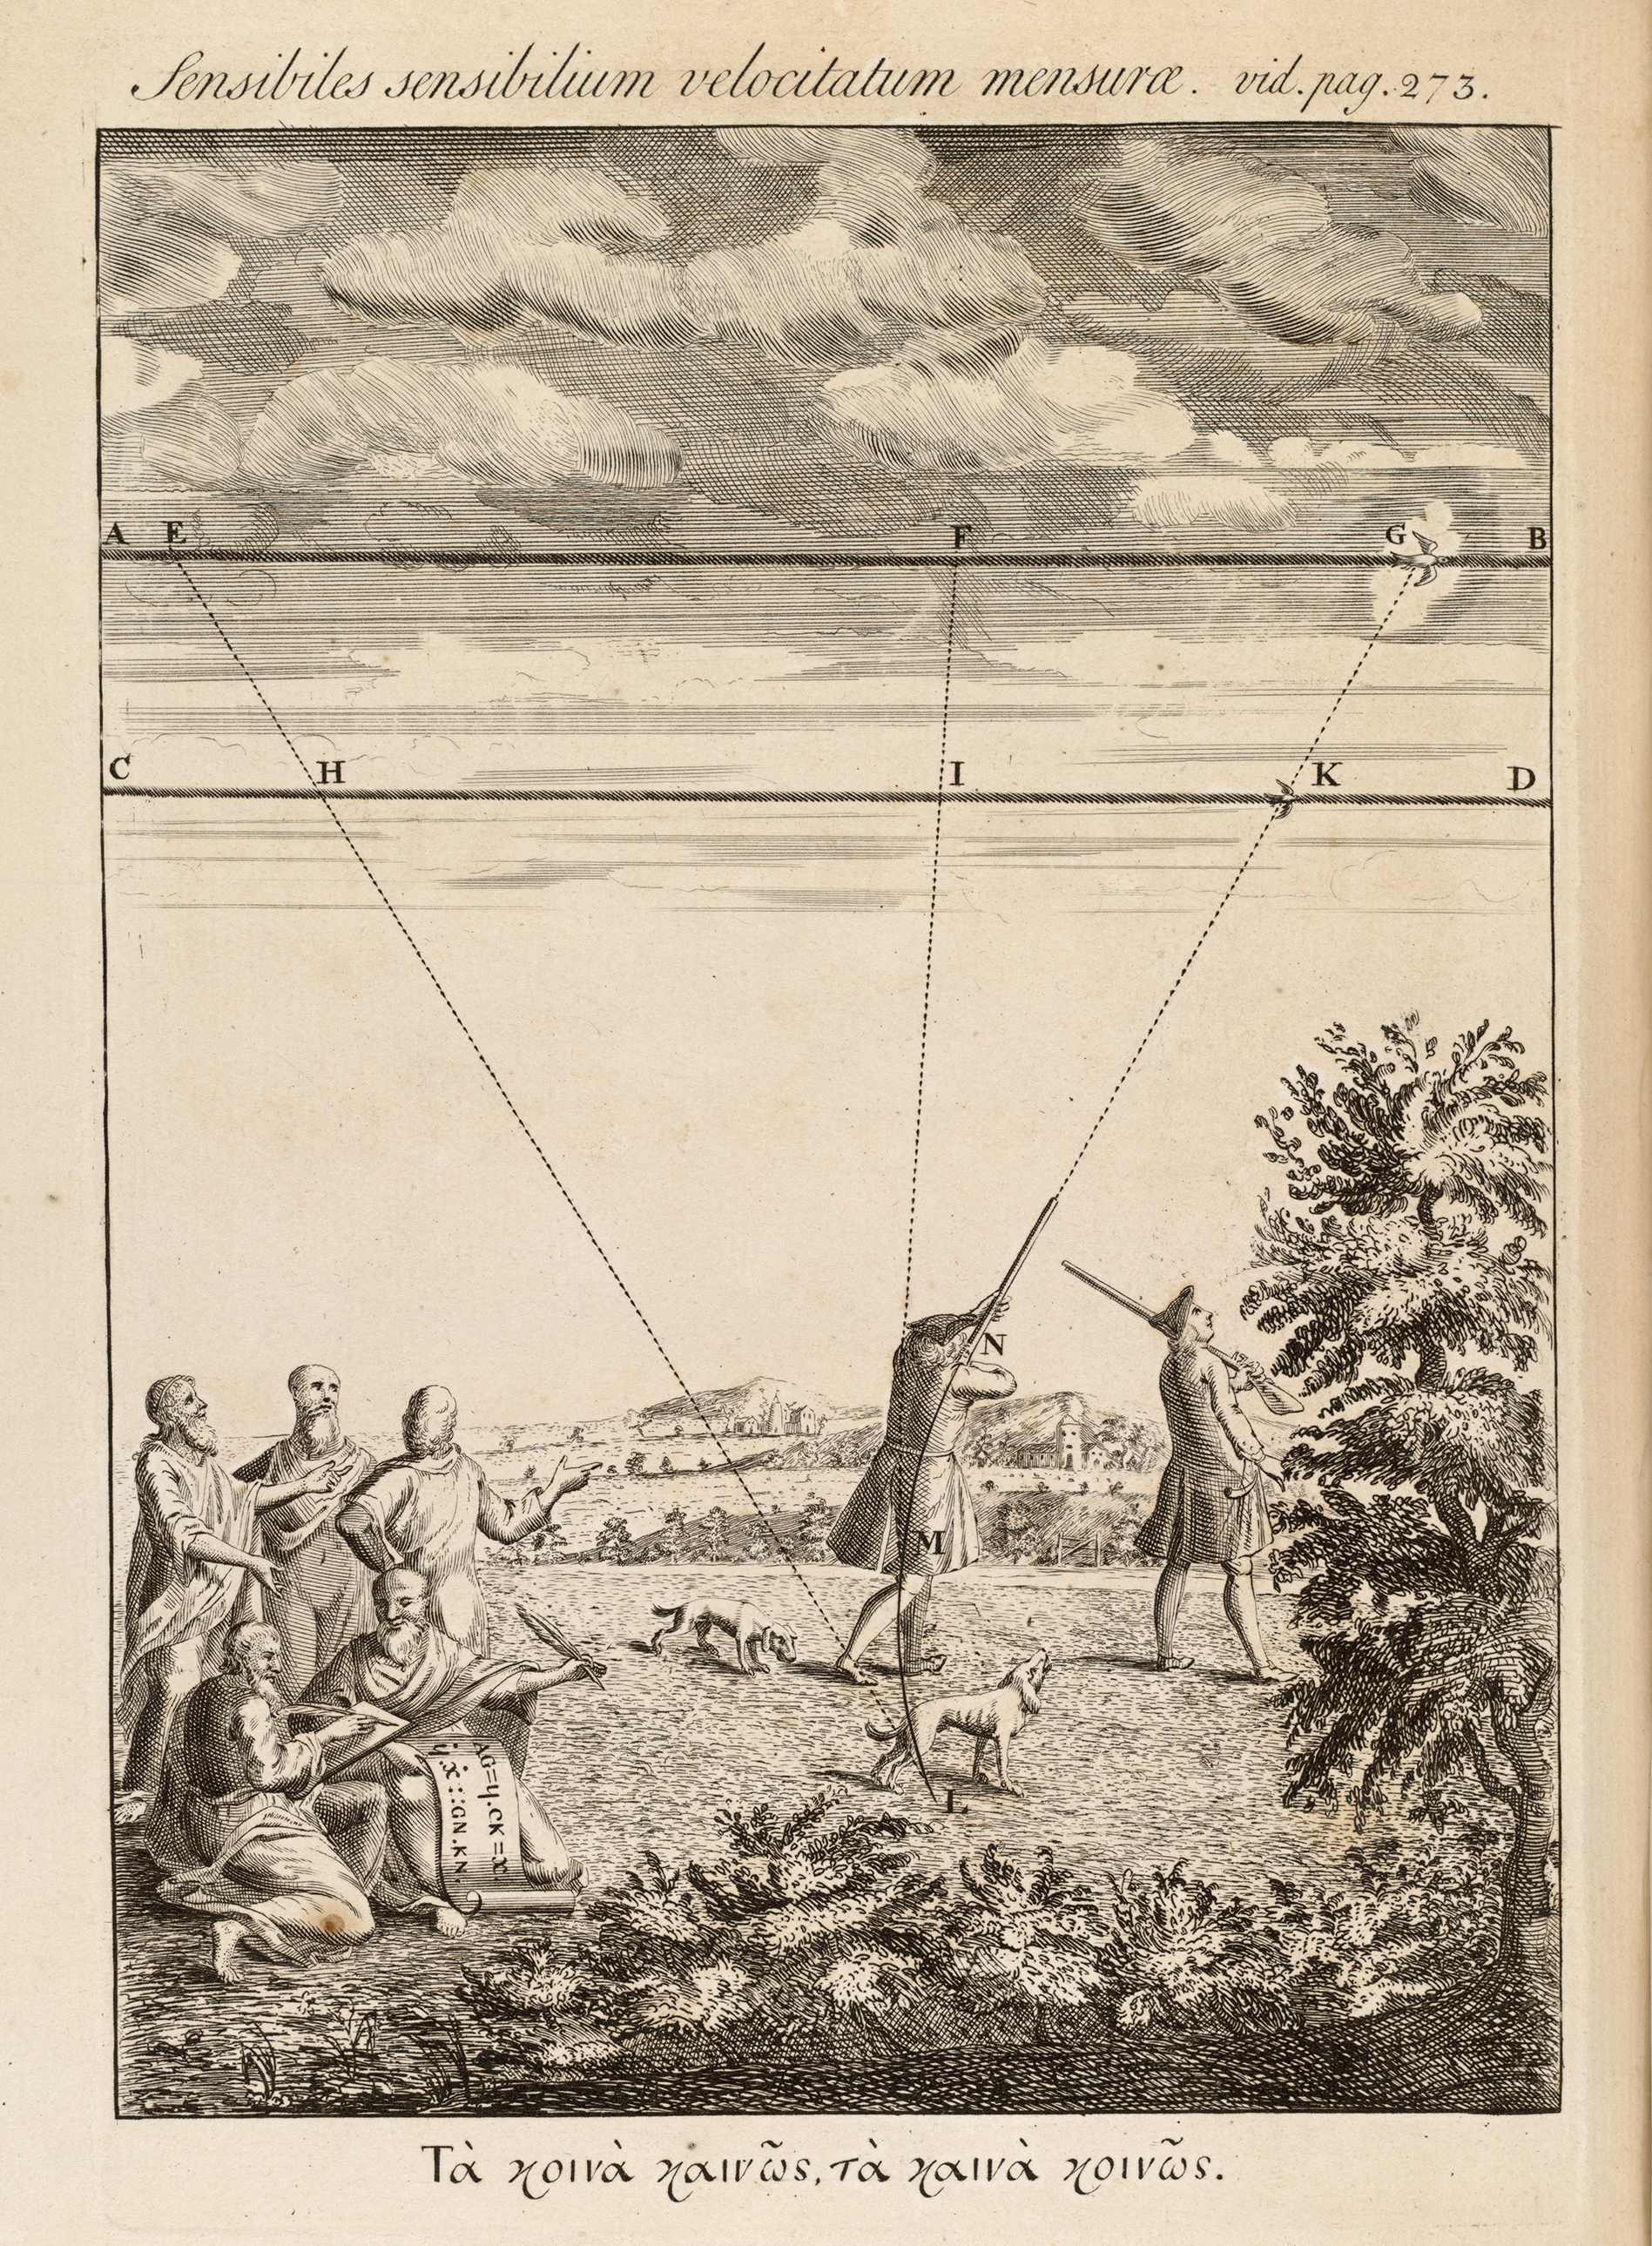 BT3.182.6, frontispiece, Isaac Newton's The method of fluxions and infinite series, 1736